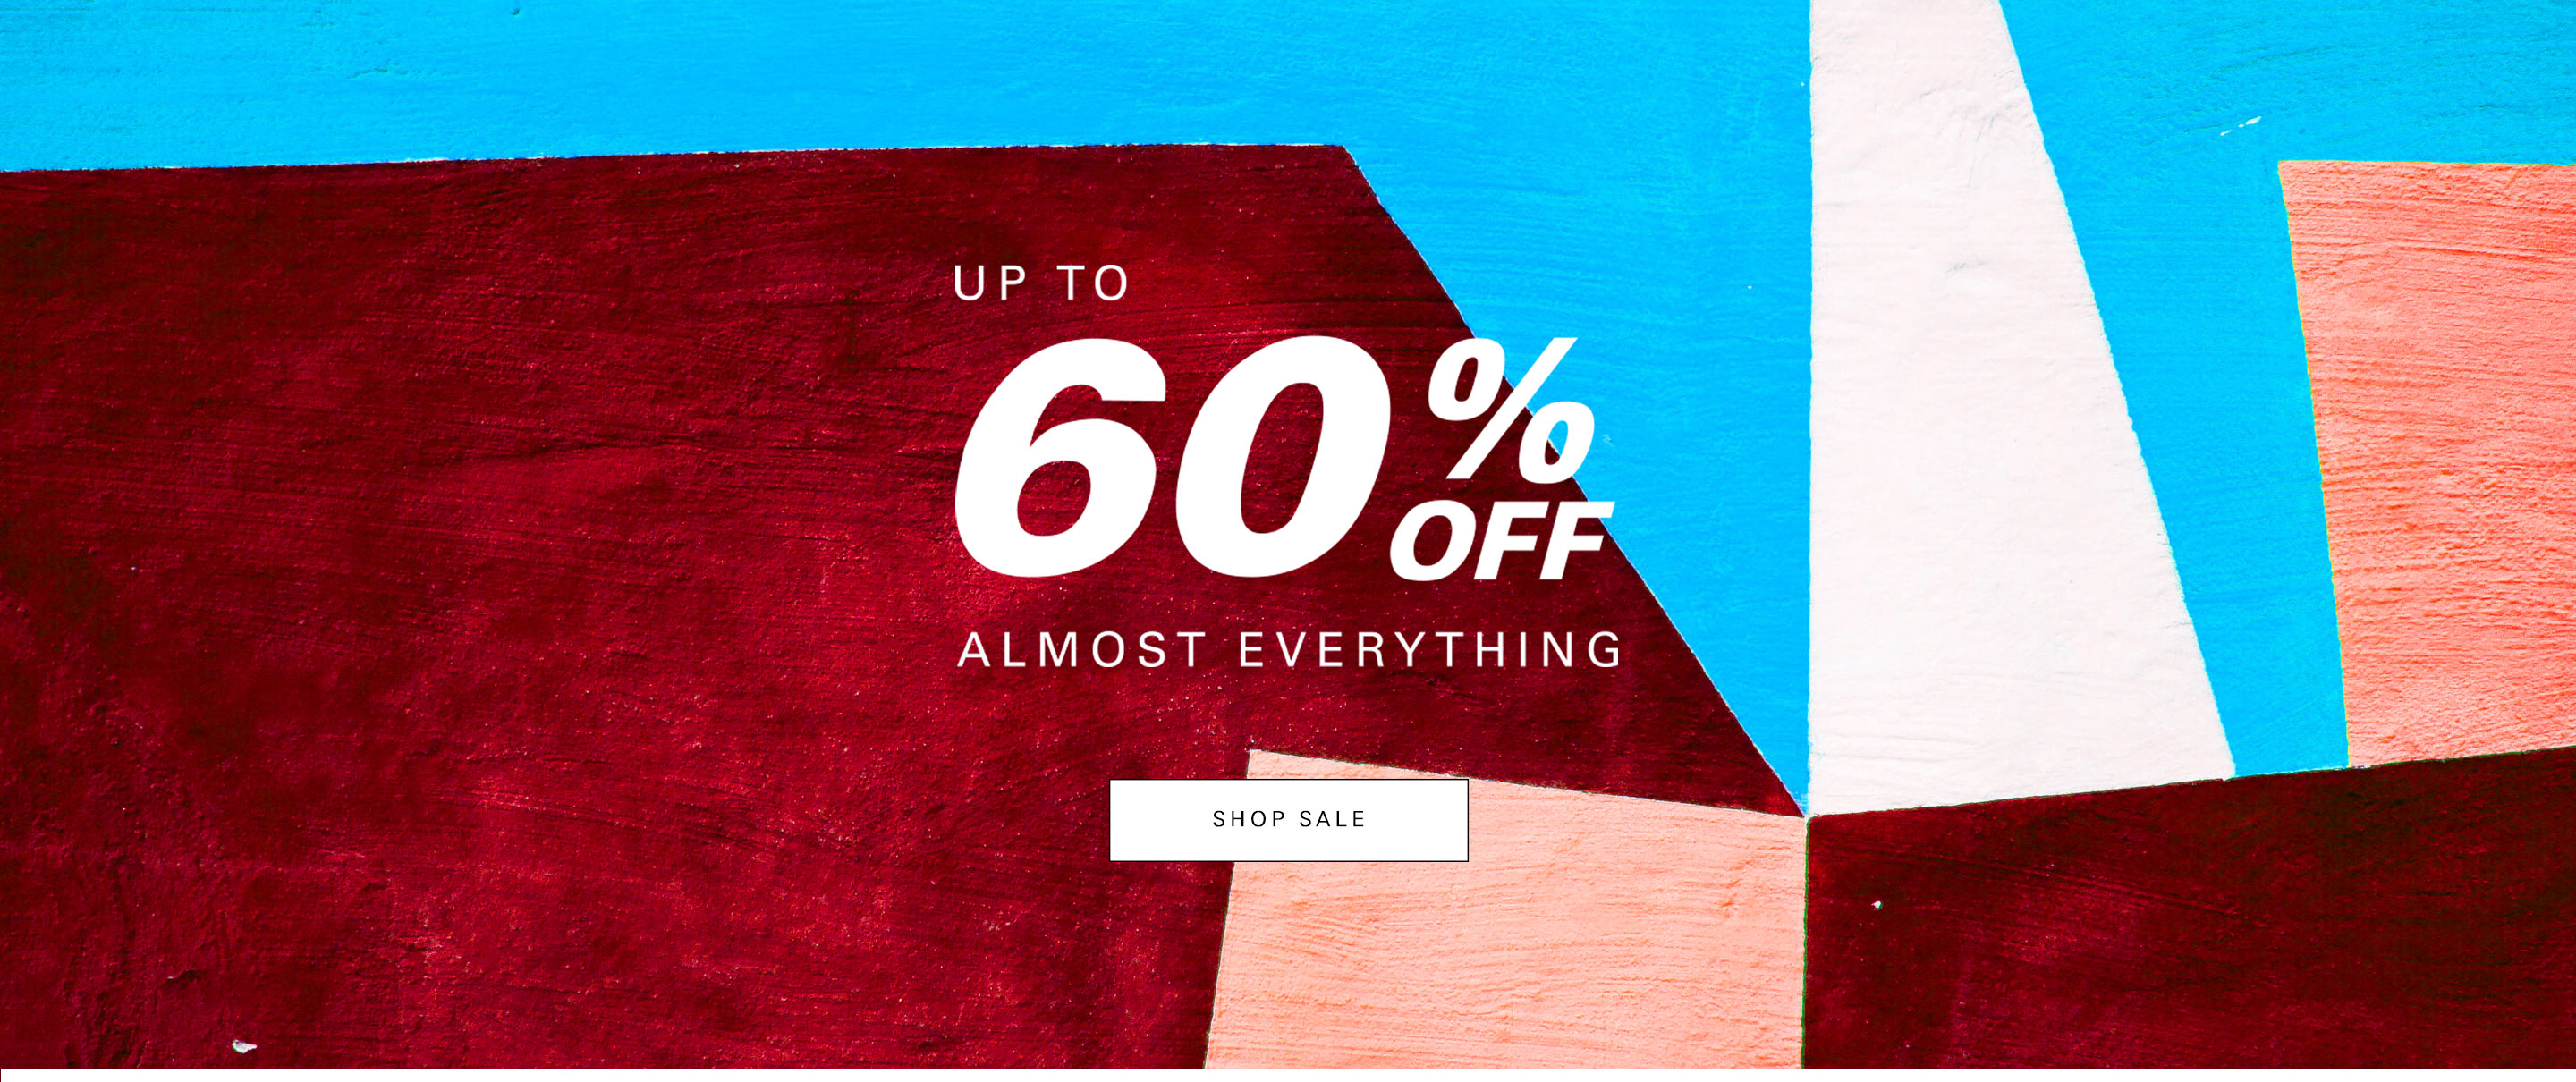 Up to 60% Off | Shop Sale